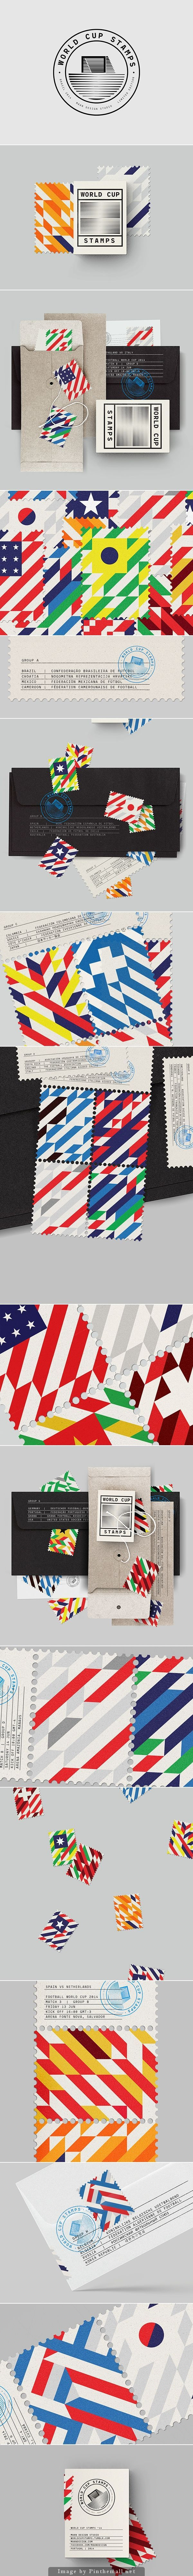 World Cup Stamps 2014 | Branding | Pinterest